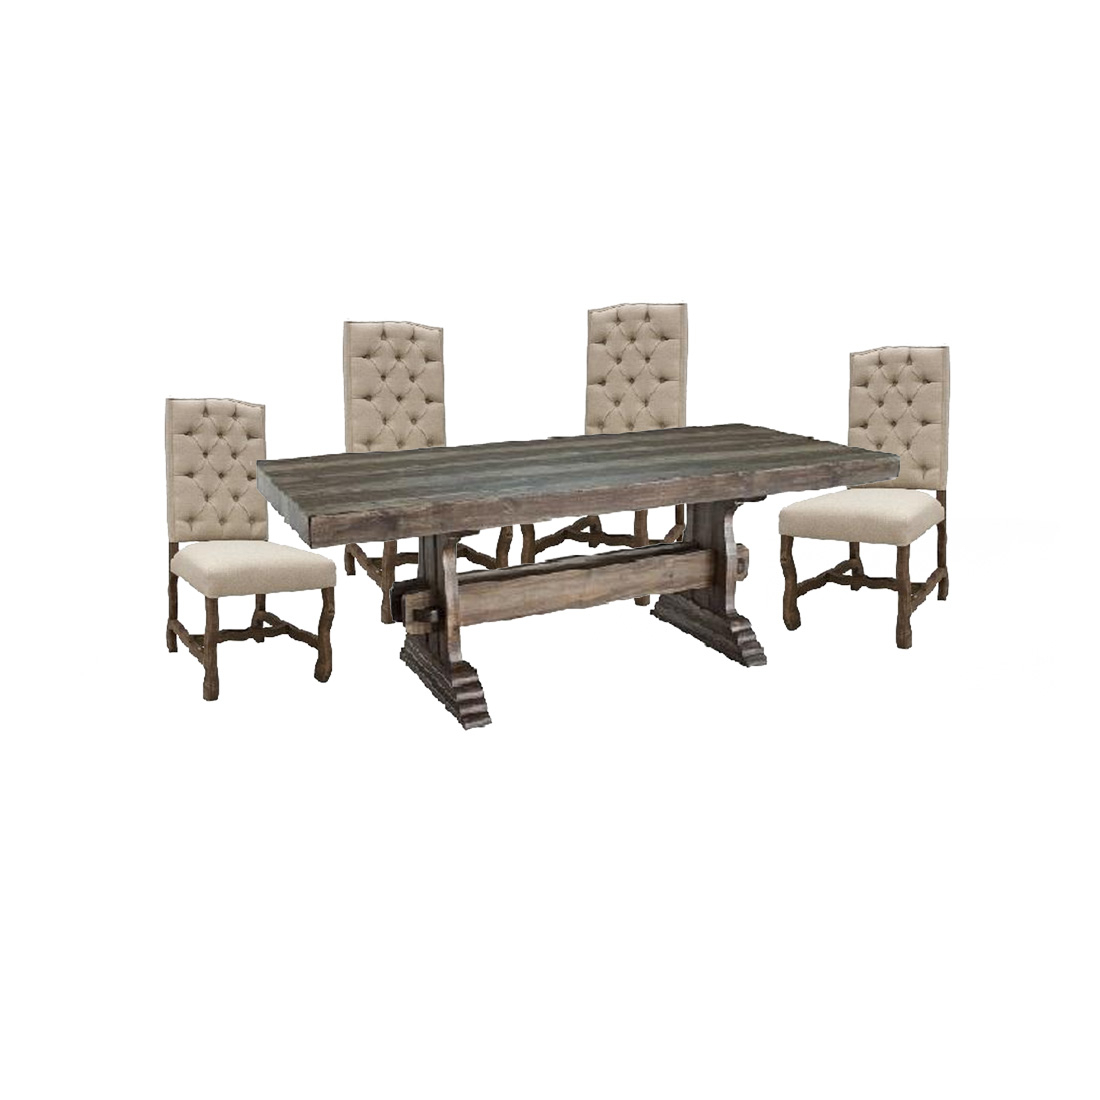 Avondale Dining Set – 4 State Rustic Furniture Regarding Most Popular Avondale Dining Tables (View 10 of 25)